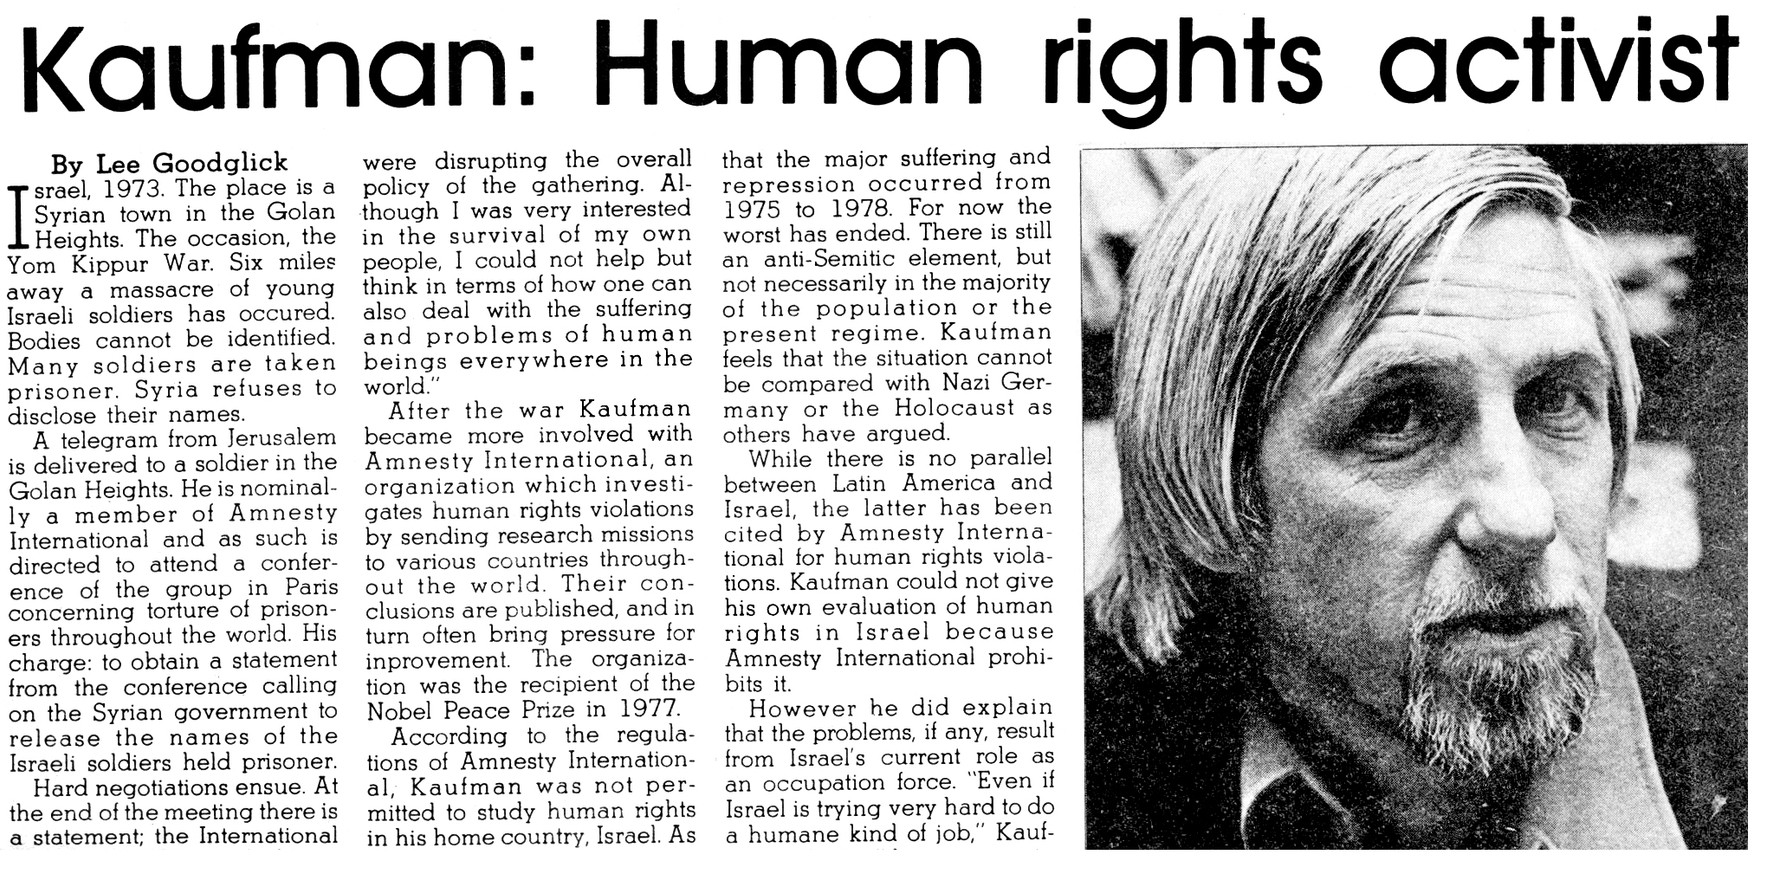 kaufman human rights activist 1982 1.jpe